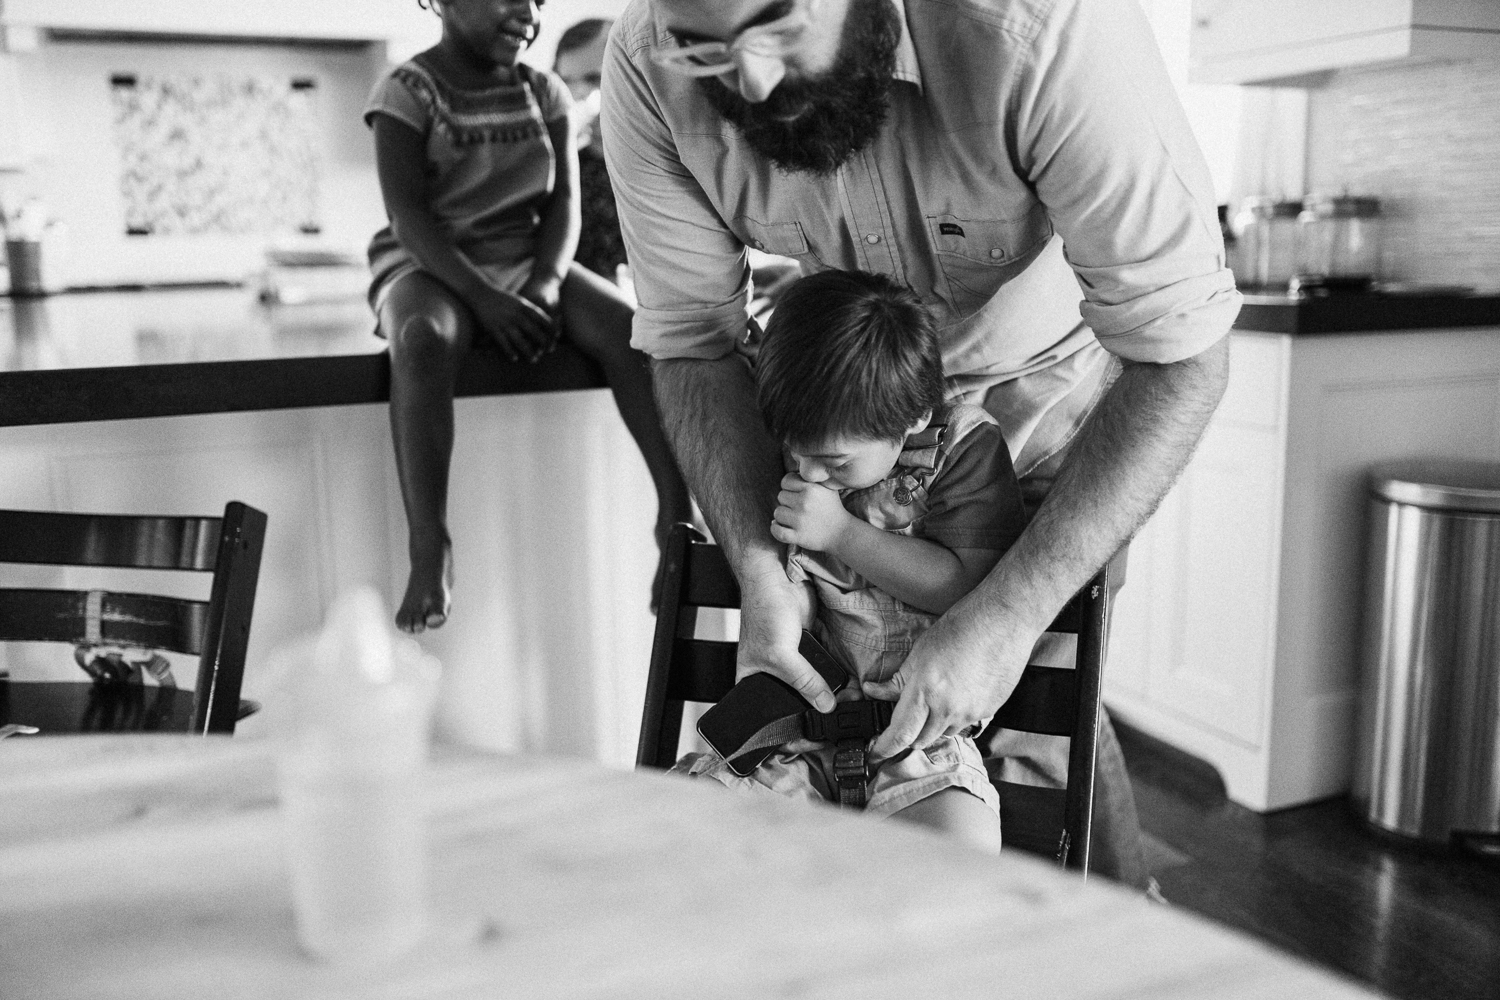 natural-and-artistic-photo-father-buckling-son-into-highchair-slc-ut